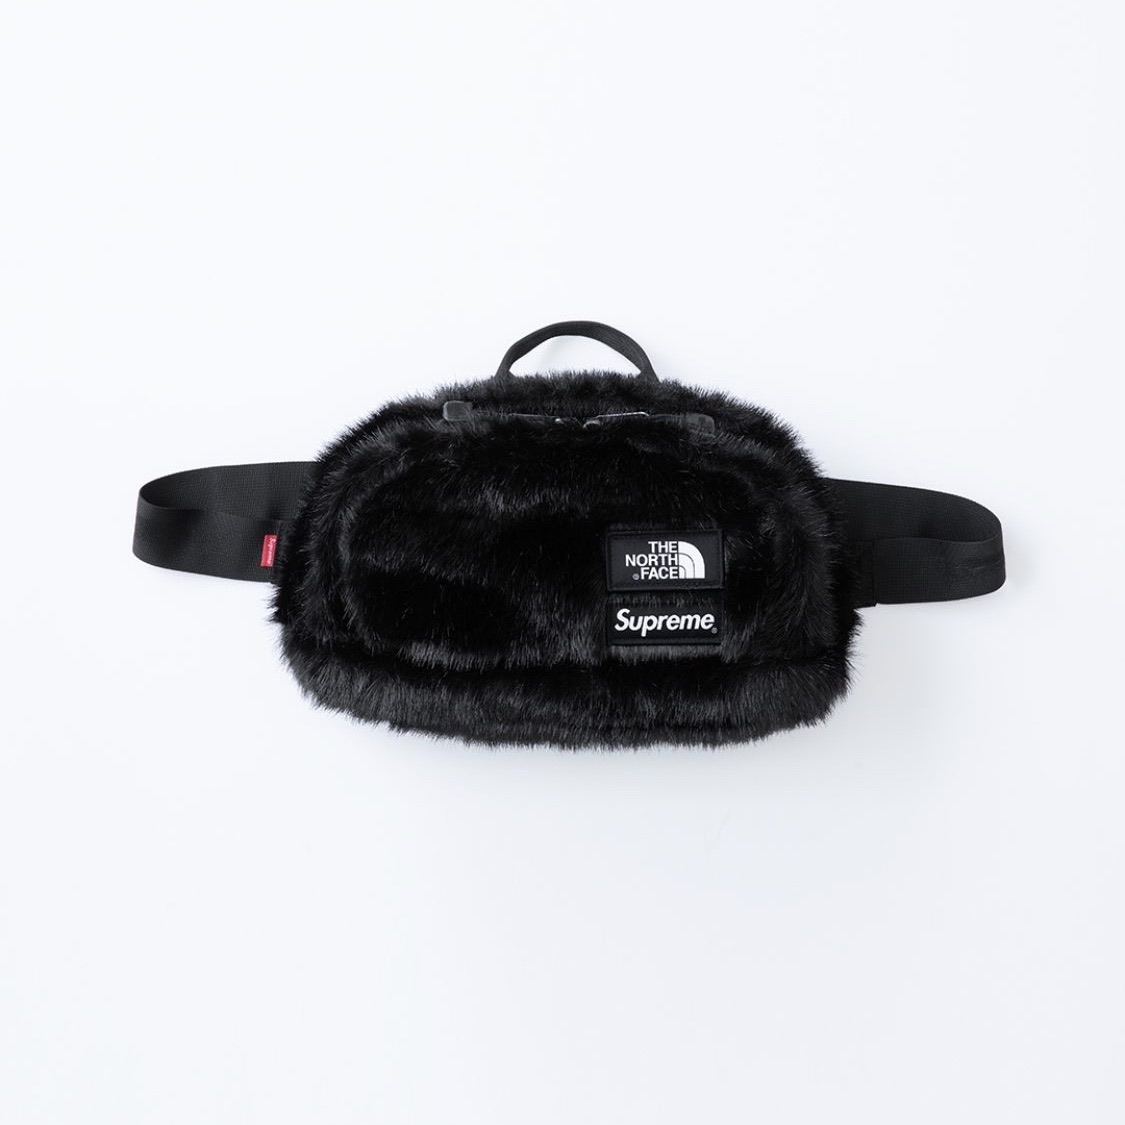 supreme-the-north-face-Faux-fur-20aw-collaboration-release-20201212-week16